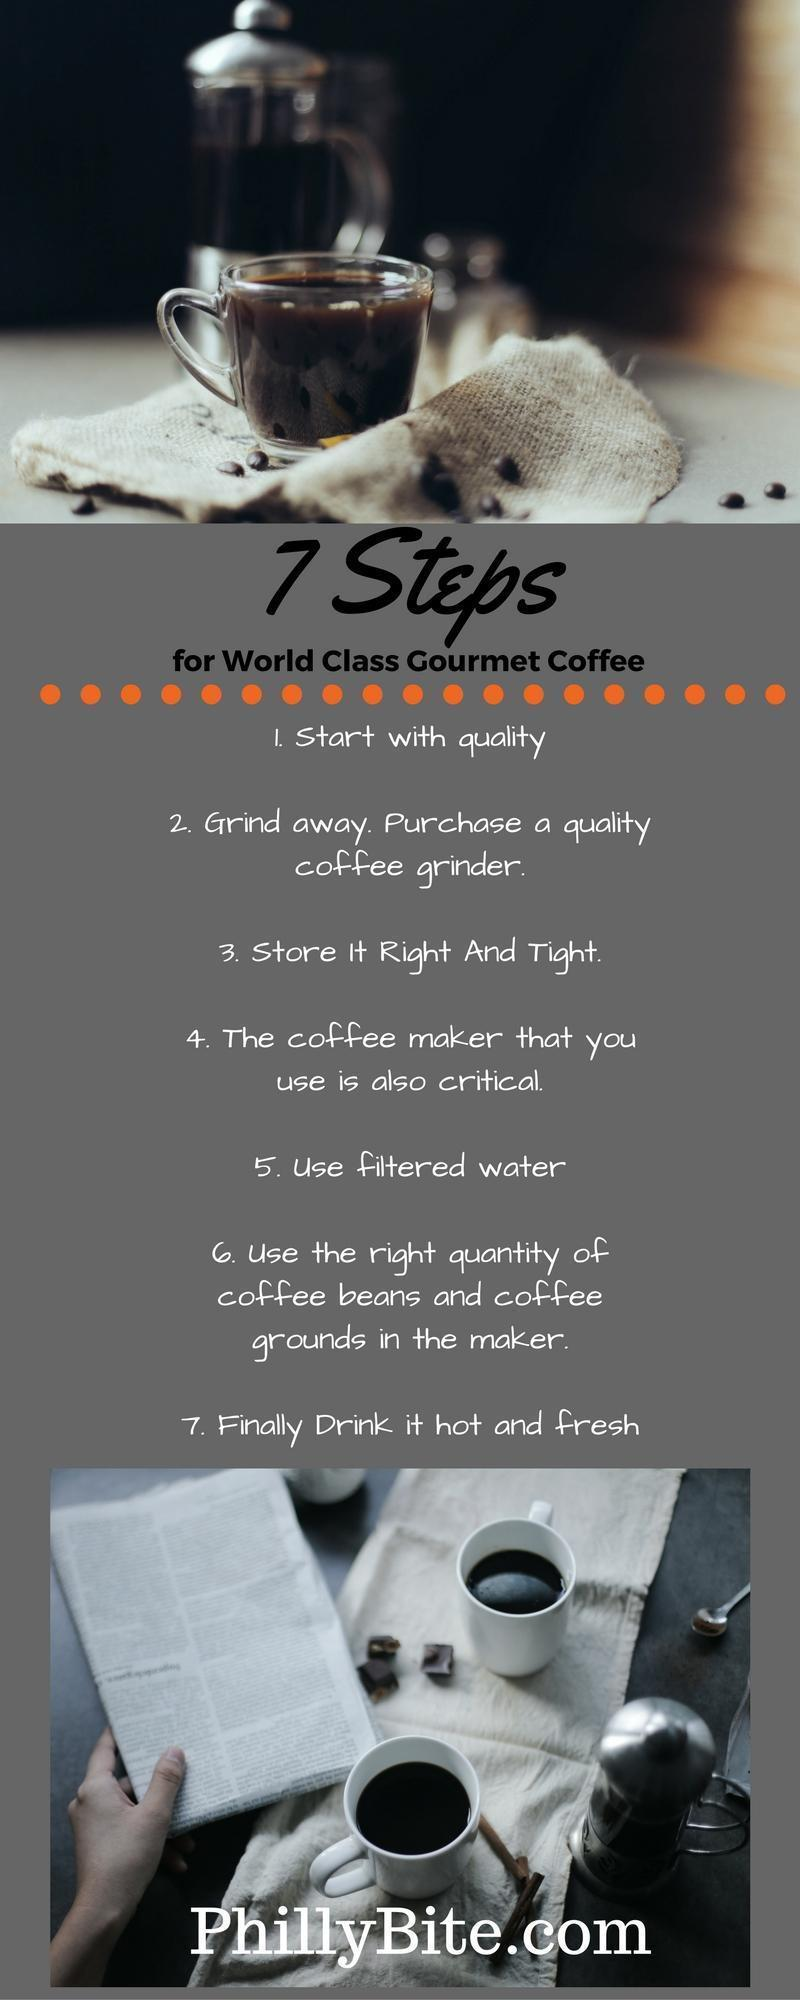 Here are 7 simple steps that you can take to produce the perfect cup of coffee every time.  Start with quality. One of the most critical aspects of coffee drinking is the grade of the coffee that you start off with. If you have a favorite flavor, then purchase whole beans in that flavor. If you can do this, it will allow you to get the most fresh coffee accessible.  Grind away. Purchase a quality coffee grinder. Some of the best grinders available today are easy to use and easy to clean up. By grinding your own coffee beans, youll be able to only grind what you need, meaning that you will have complete freshness in your coffee.  Store It Right And Tight. It is very fundamental to store your coffee tightly. Air oxidizes the coffee and can make it to get bitter quickly. Metal canisters can also enable a metal taste to get into the coffee, making it taste bad.